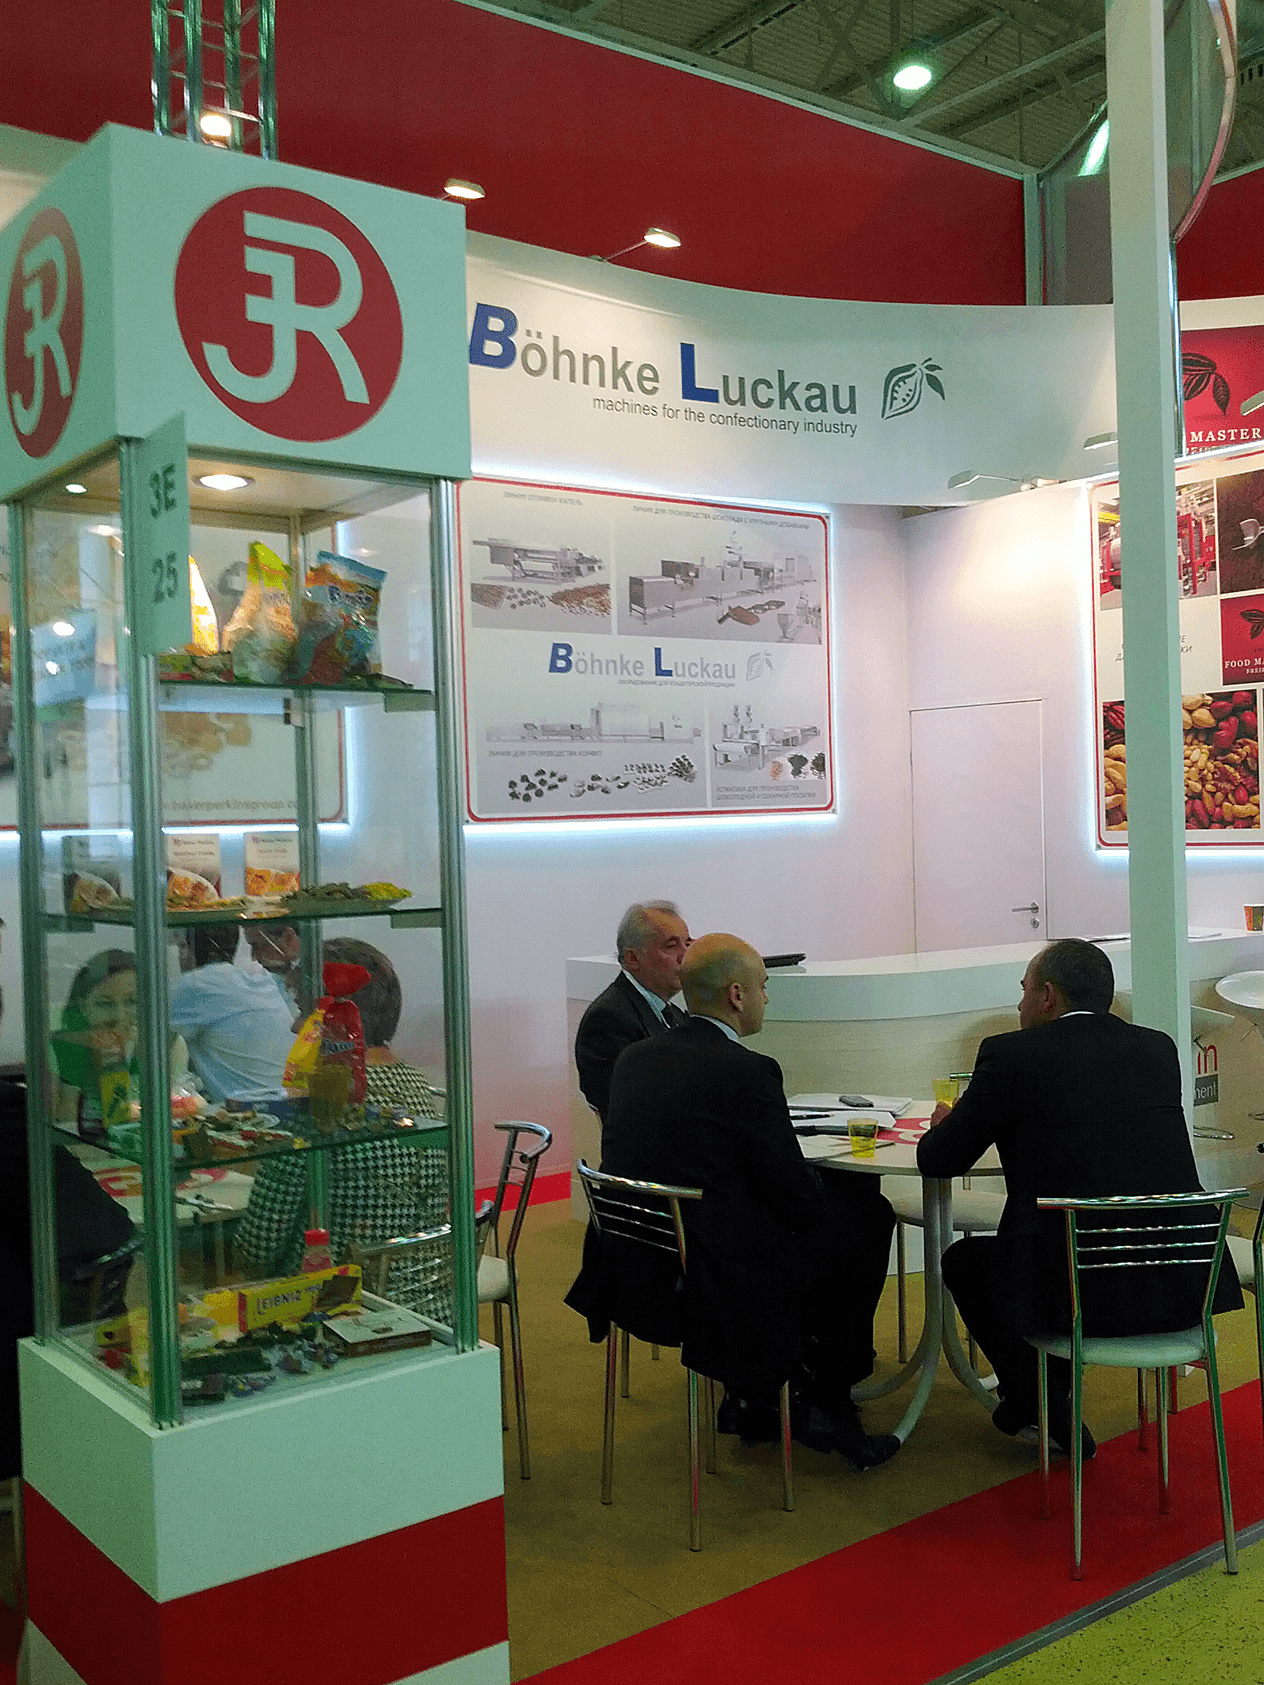 Böhnke & Luckau at the exhibition Agroprodmash Russia